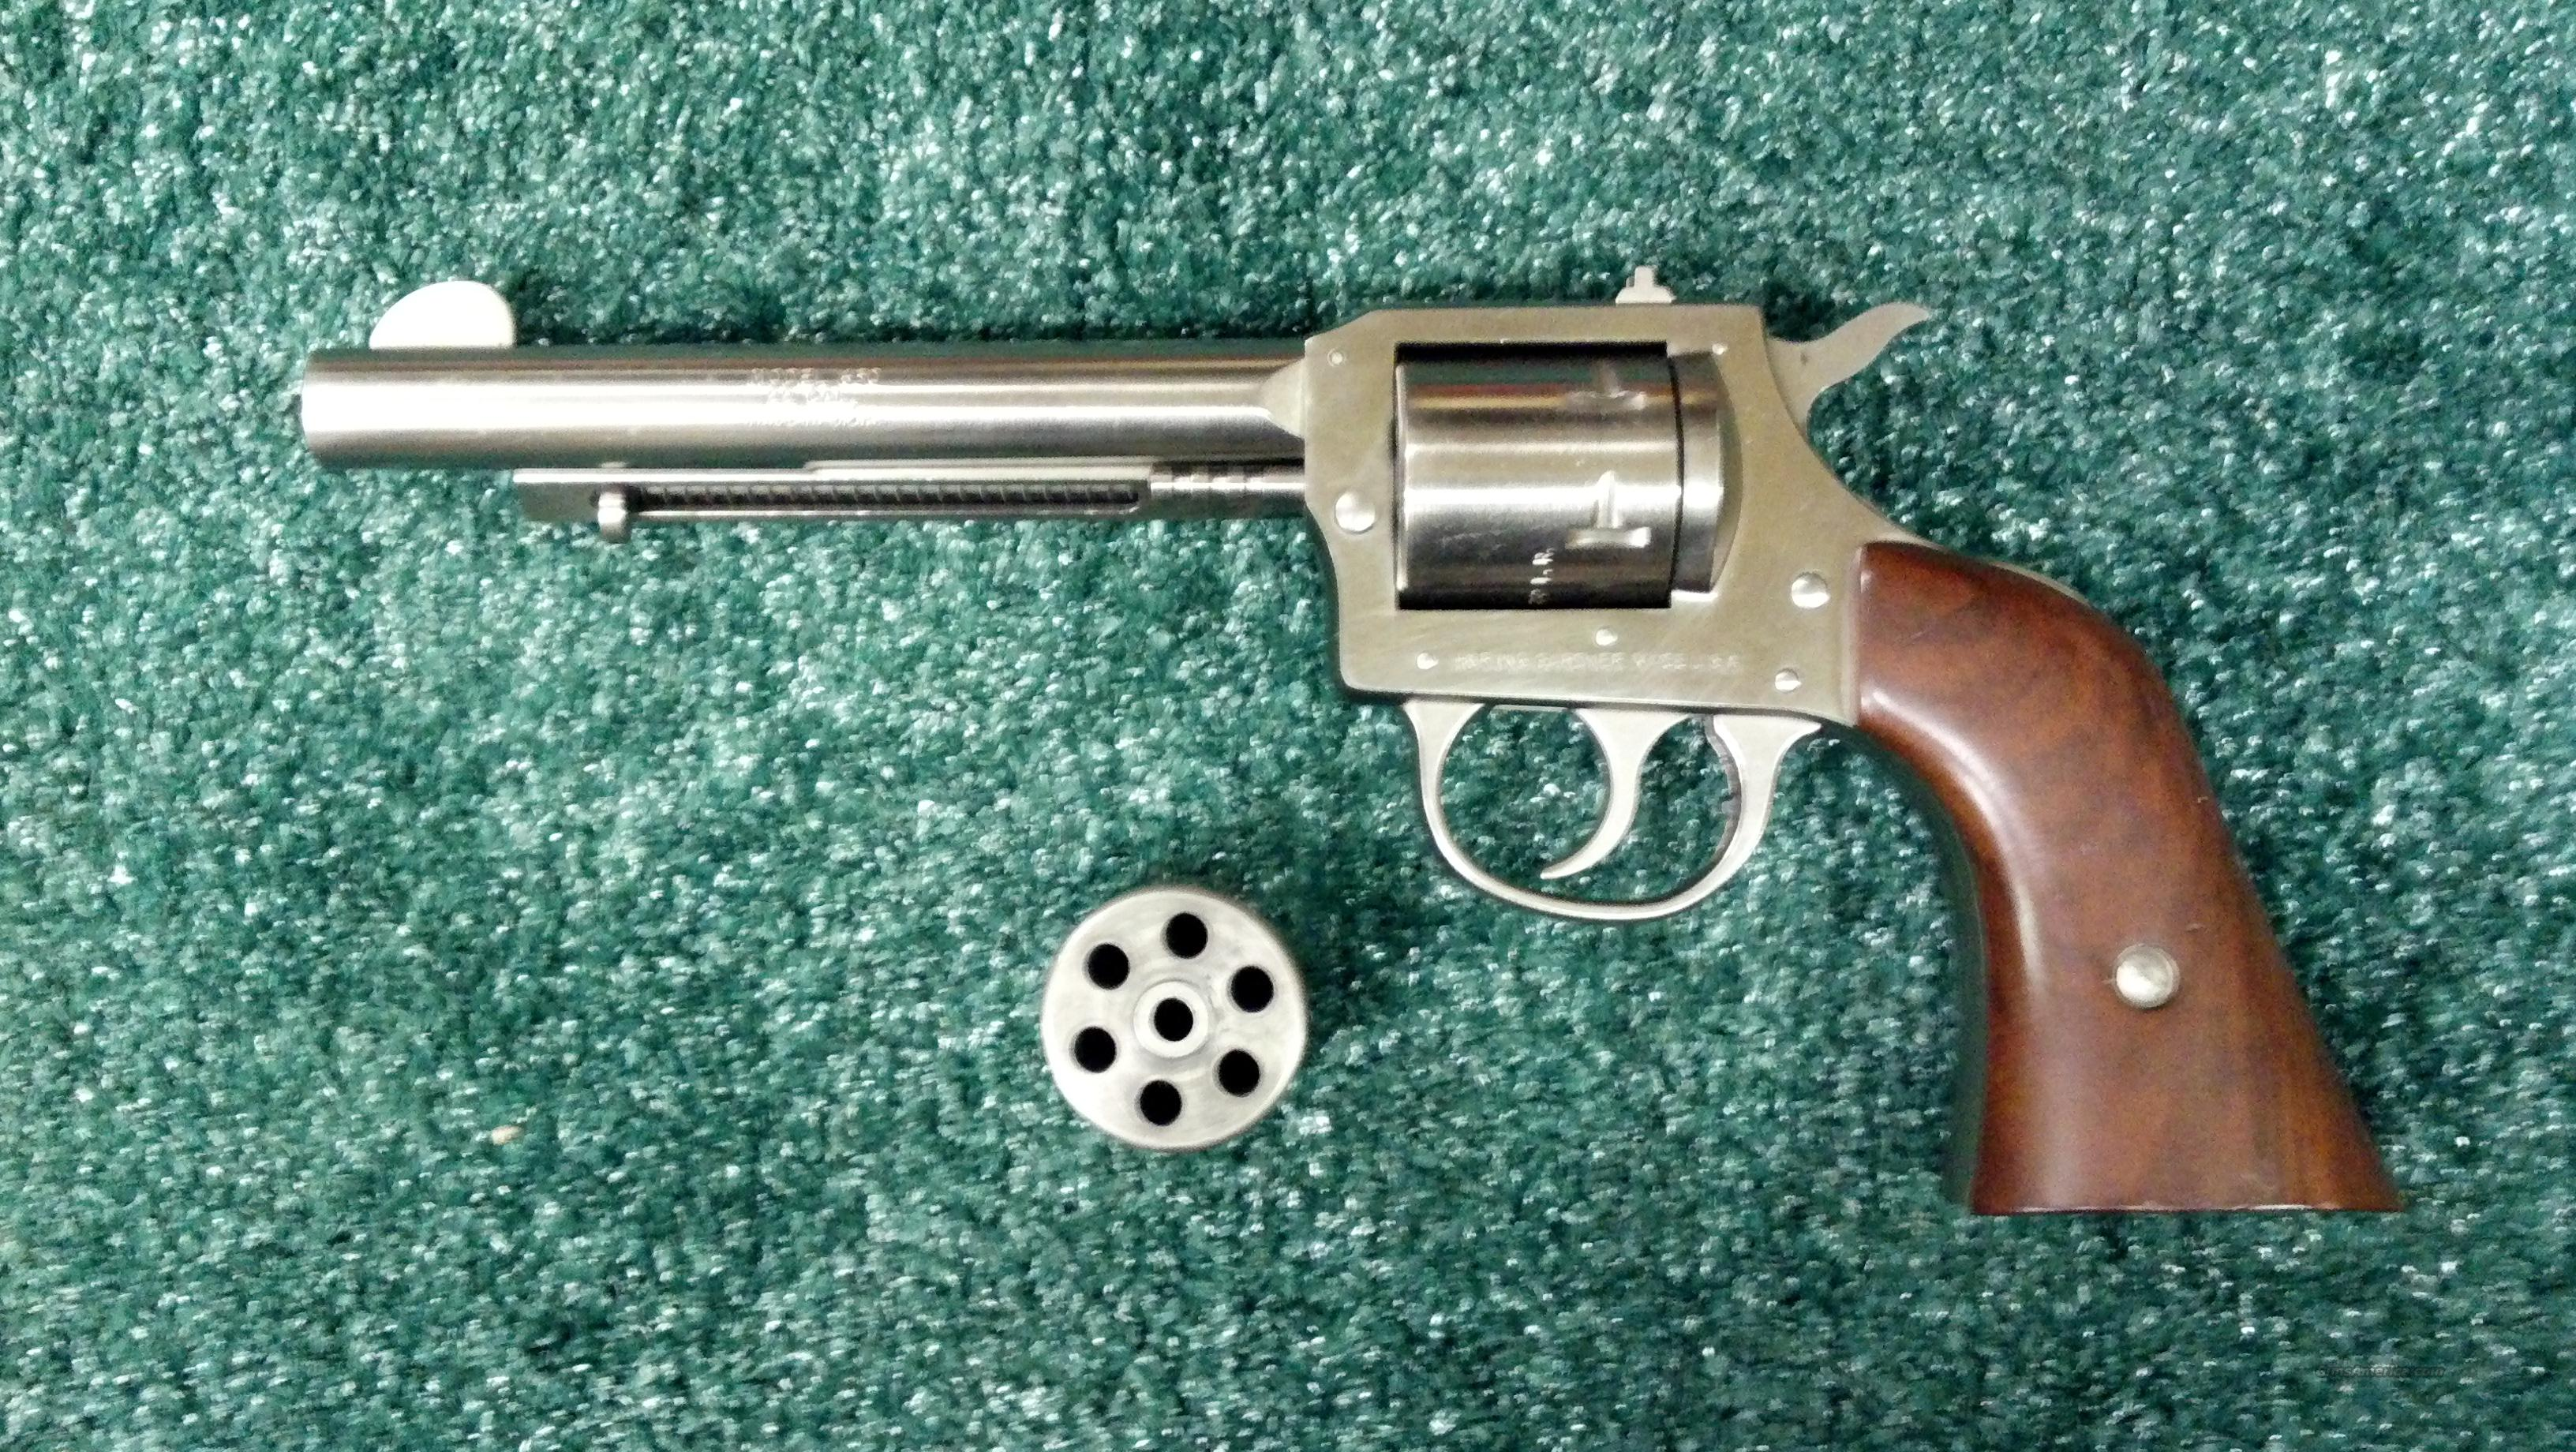 H&R 650 .22lr/.22 mag  Revolver  Guns > Pistols > Harrington & Richardson Pistols